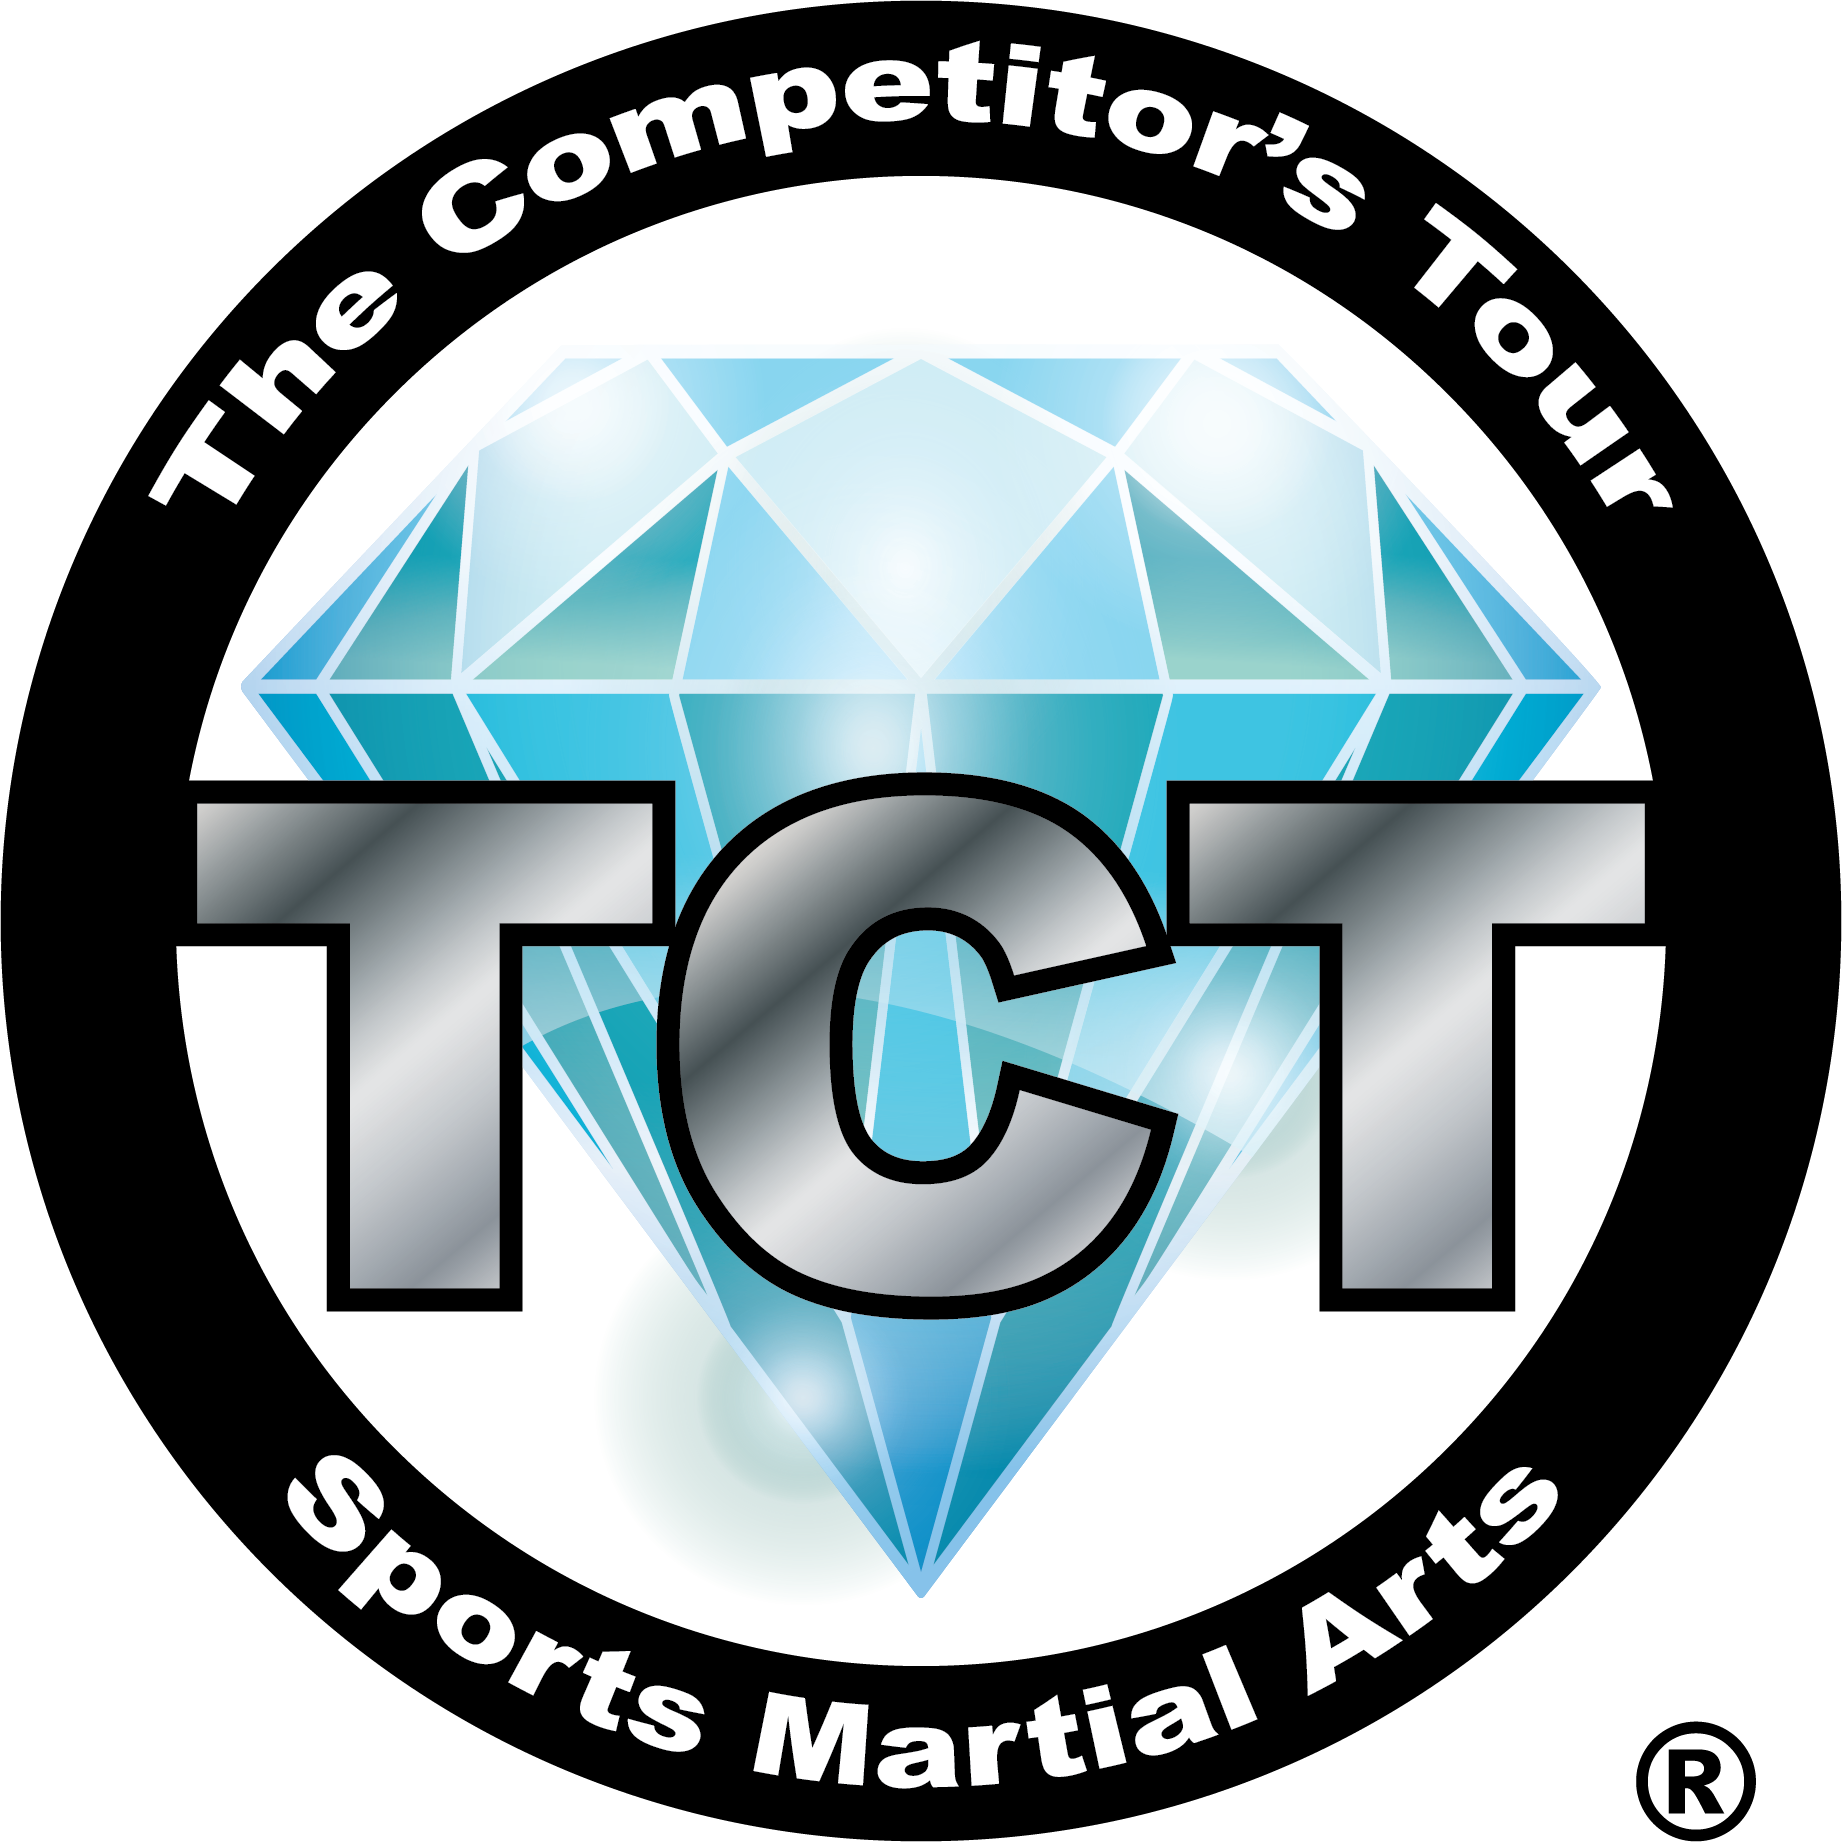 The Competitor's Tour - Sports Martial Arts